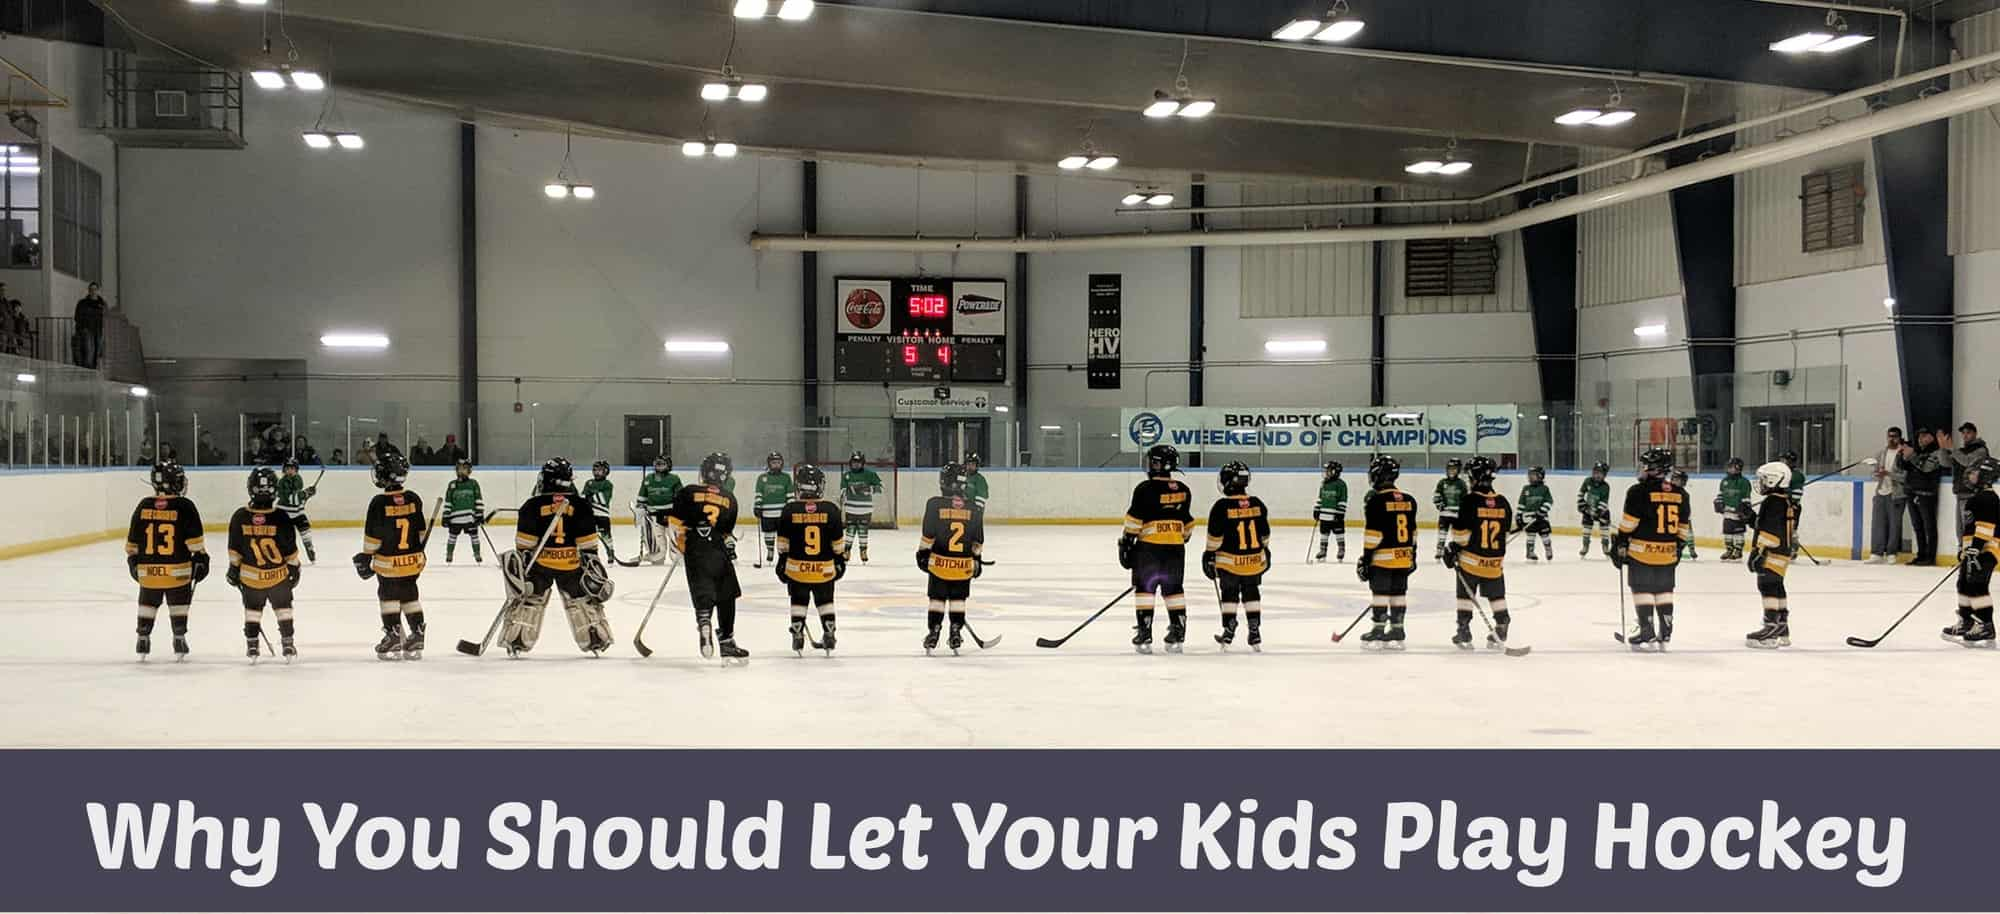 Why You Should Let Your Kids Play Hockey and How To Protect Them On The Ice